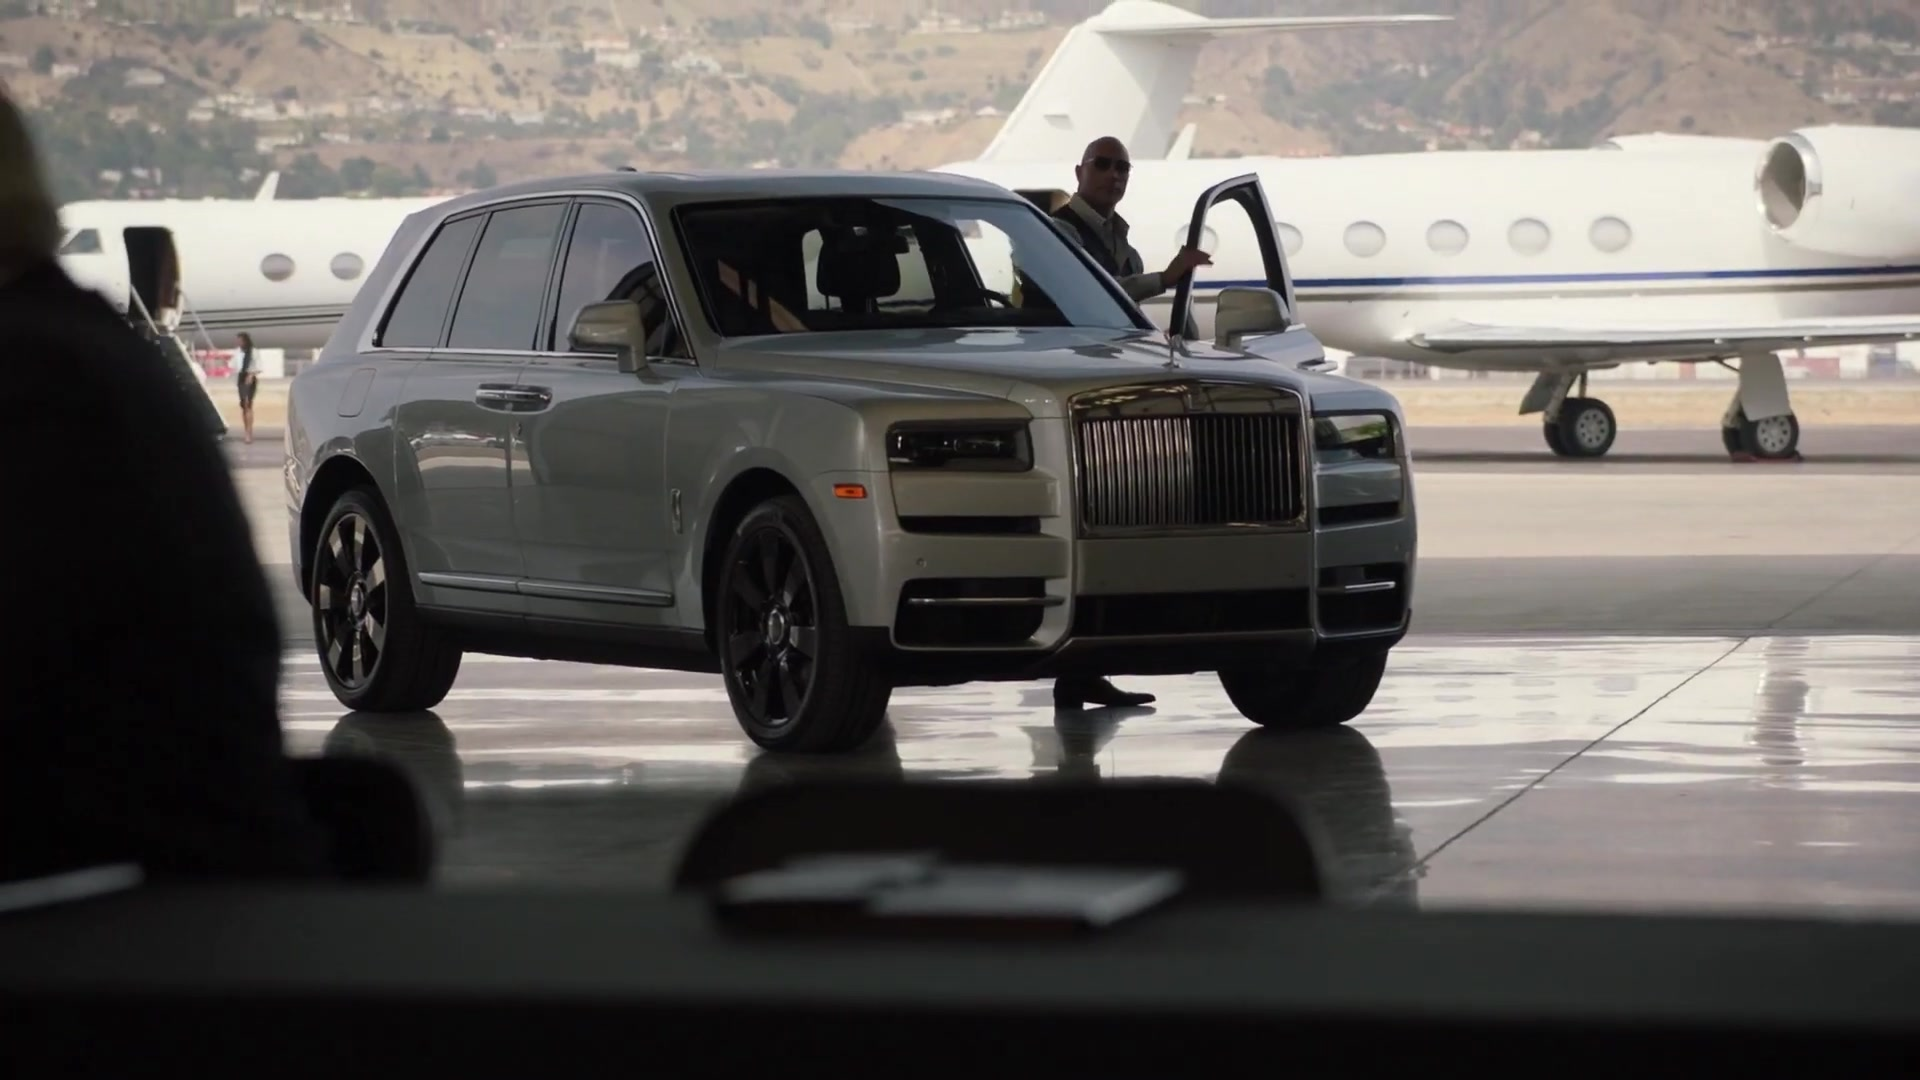 Rolls Royce Cullinan Suv Driven By Dwayne Johnson As Spencer